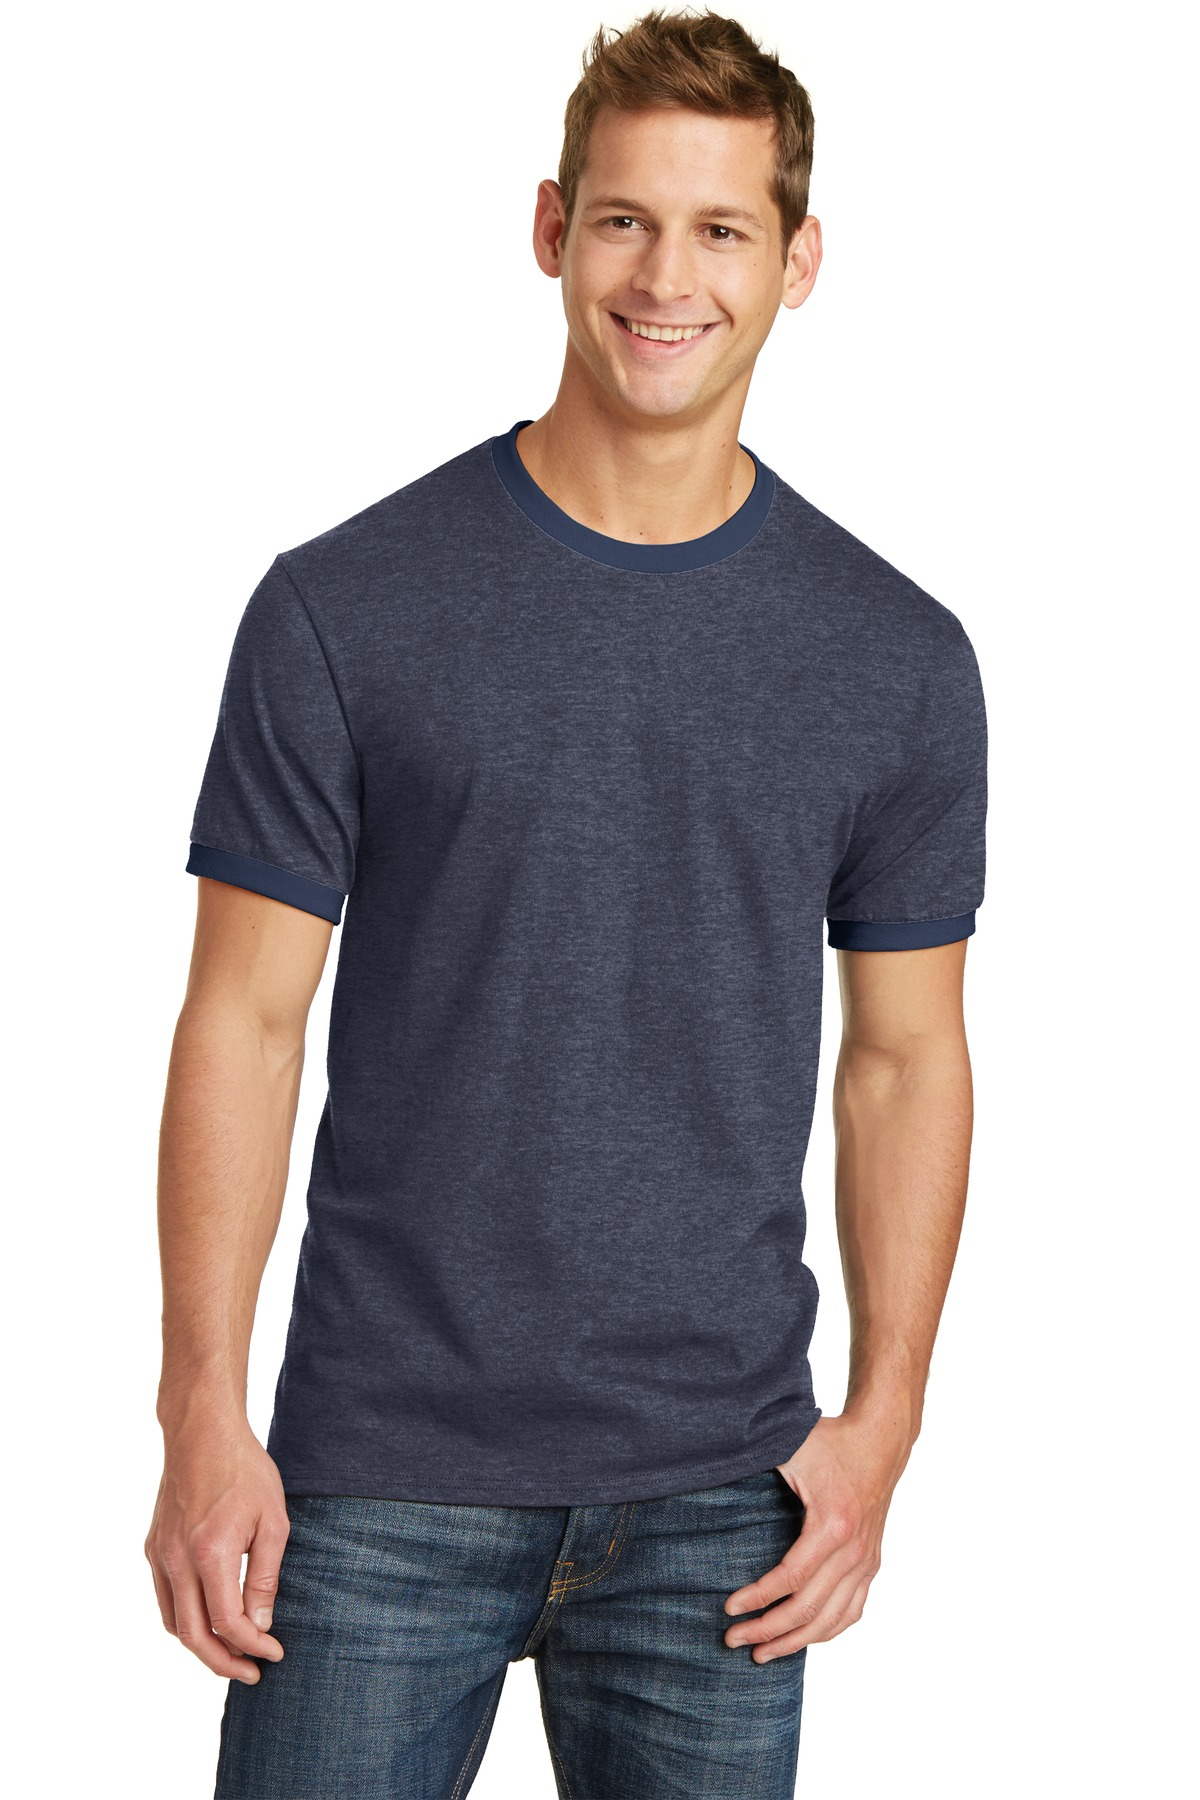 click to view Heather Navy/ Navy